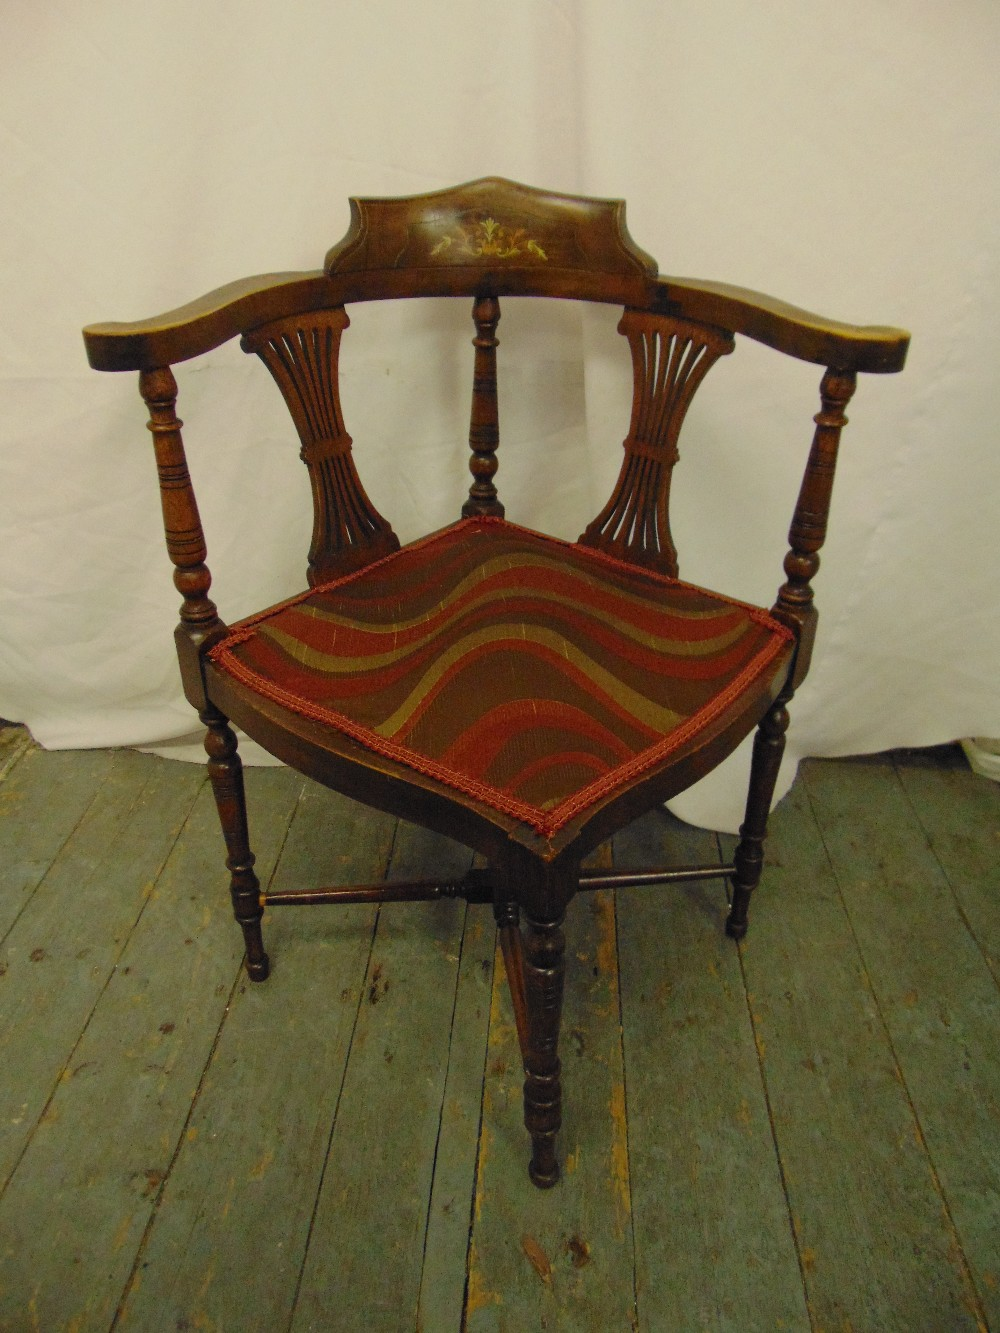 Lot 31 - An Edwardian inlaid oak corner chair with pierced slats and turned cylindrical supports